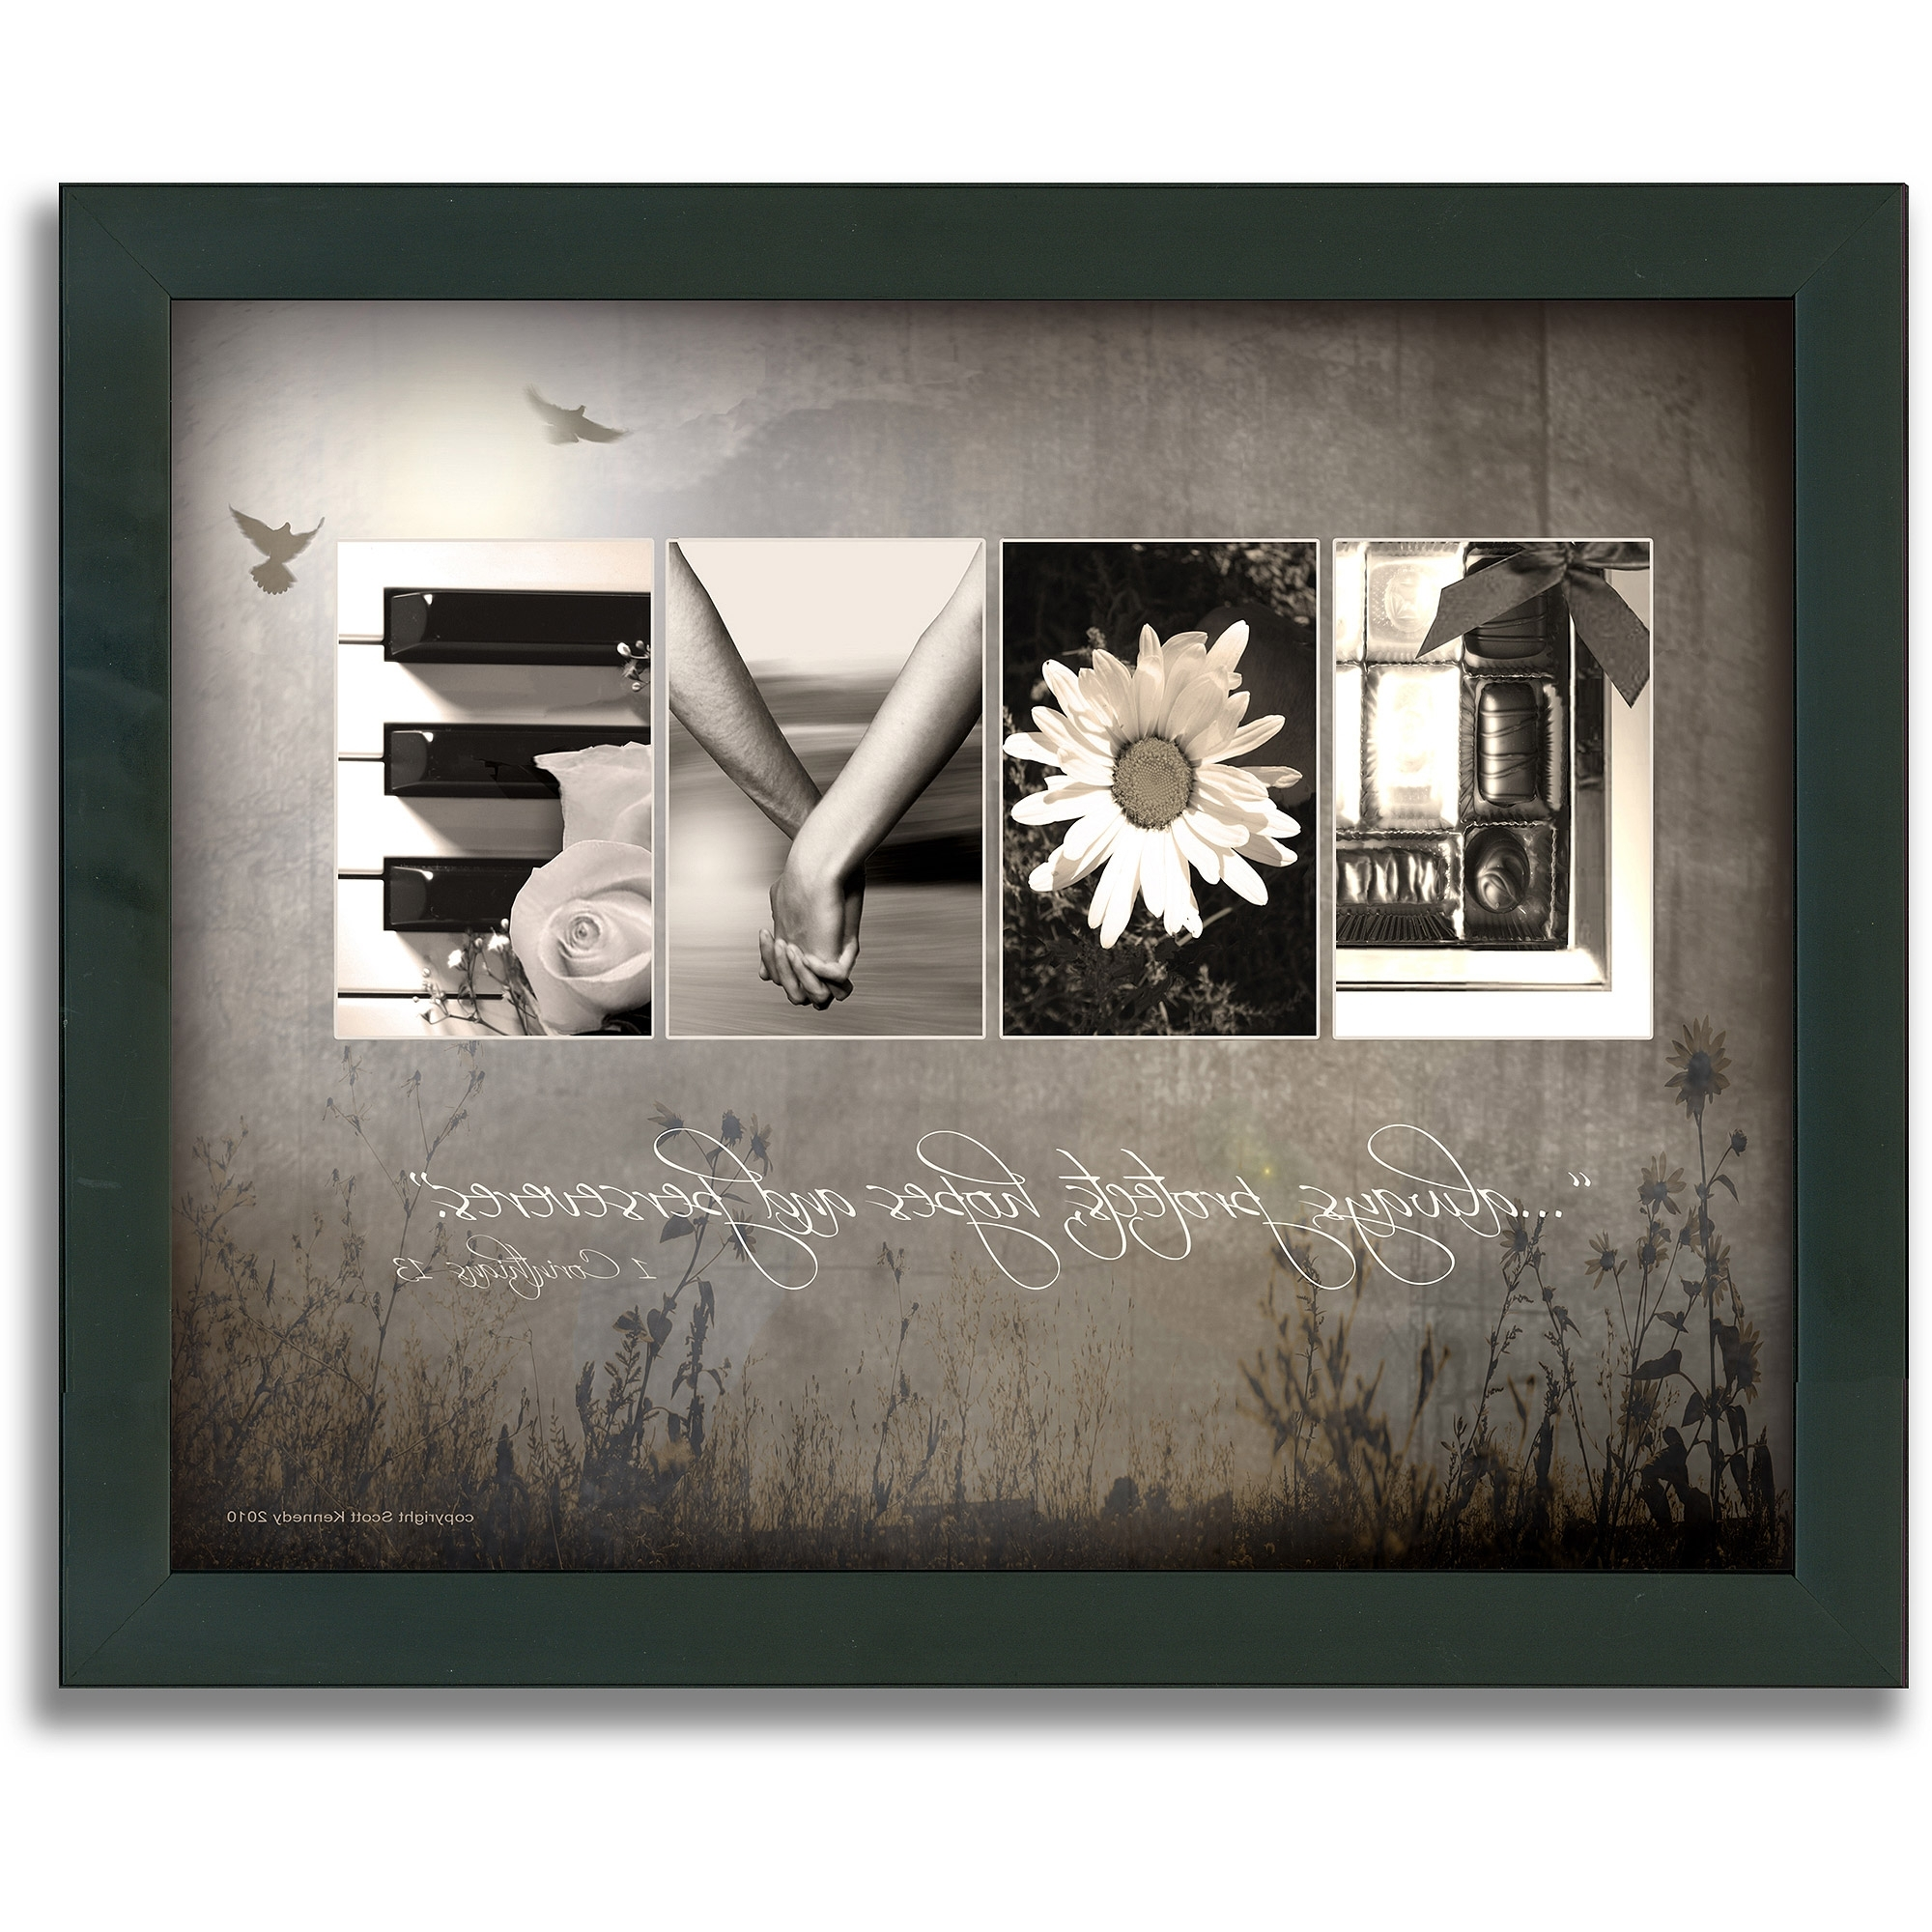 Personal Prints Love Letters Framed Canvas Wall Art U2013 Walmart Pertaining To  Well Known Canvas Wall